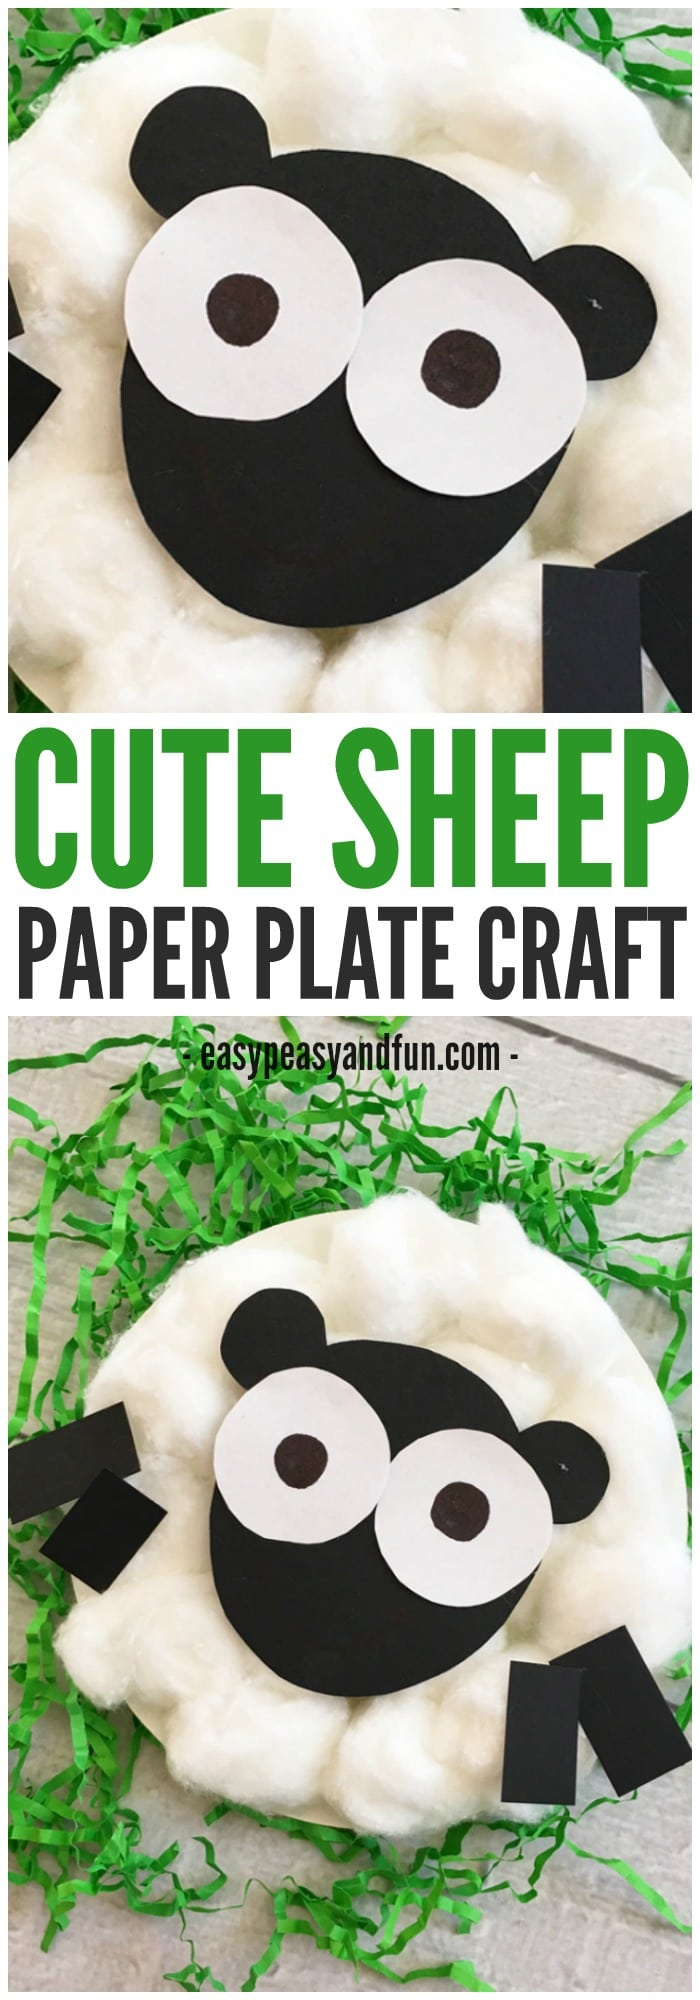 Cute Sheep Paper Plate Craft for Kids